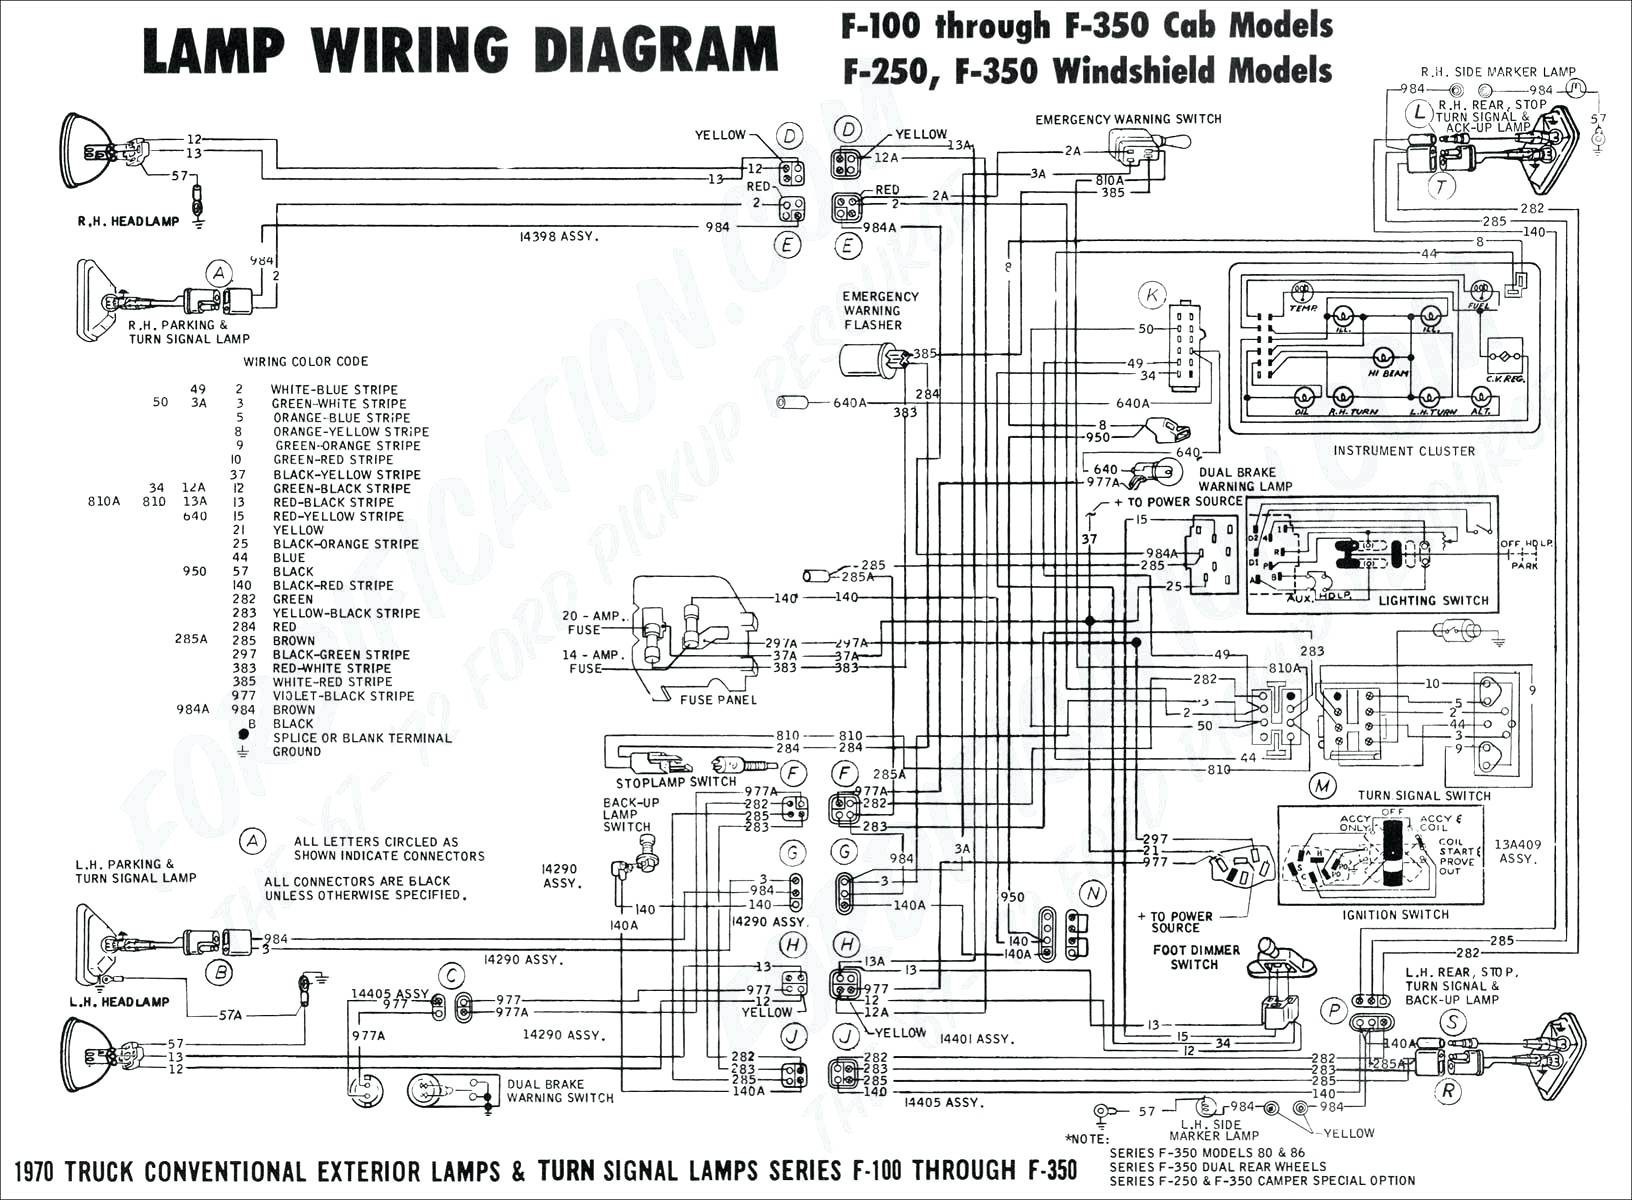 Truck Drivetrain Diagram Chevy Silverado Wiring Diagram for 1997 Best Truck Radio Suburban Of Truck Drivetrain Diagram Download ford Trucks Wiring Diagrams ford F150 Wiring Diagrams Best